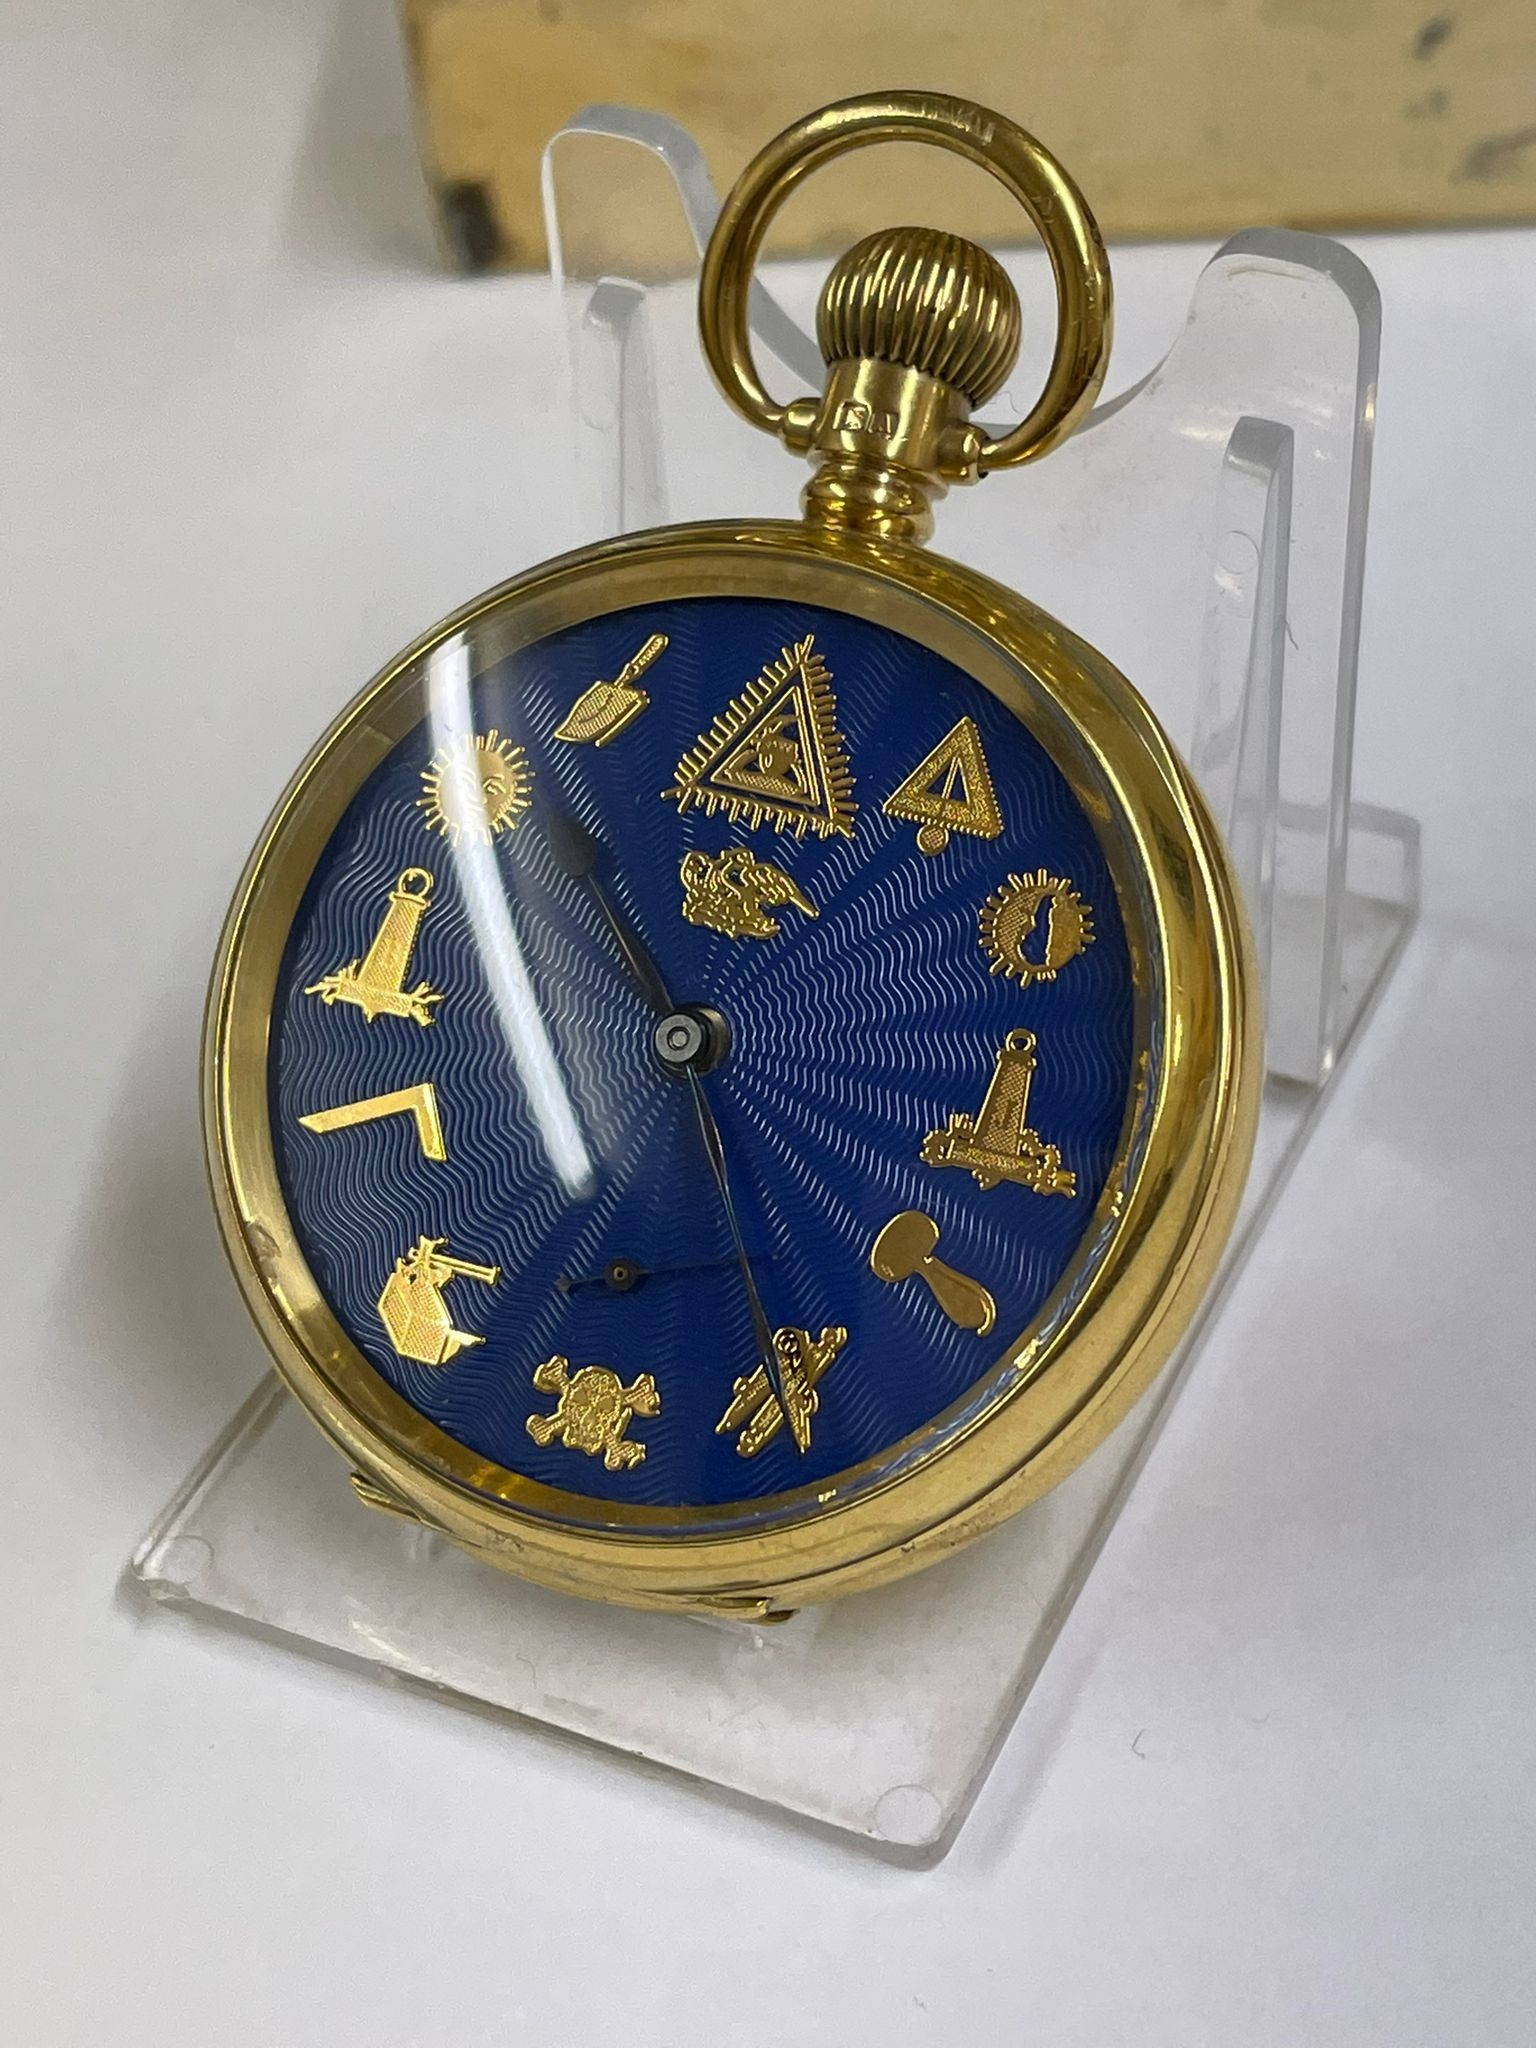 Vintage Masonic Rolex pocket watch with stand good condition and good working order but no - Image 10 of 21